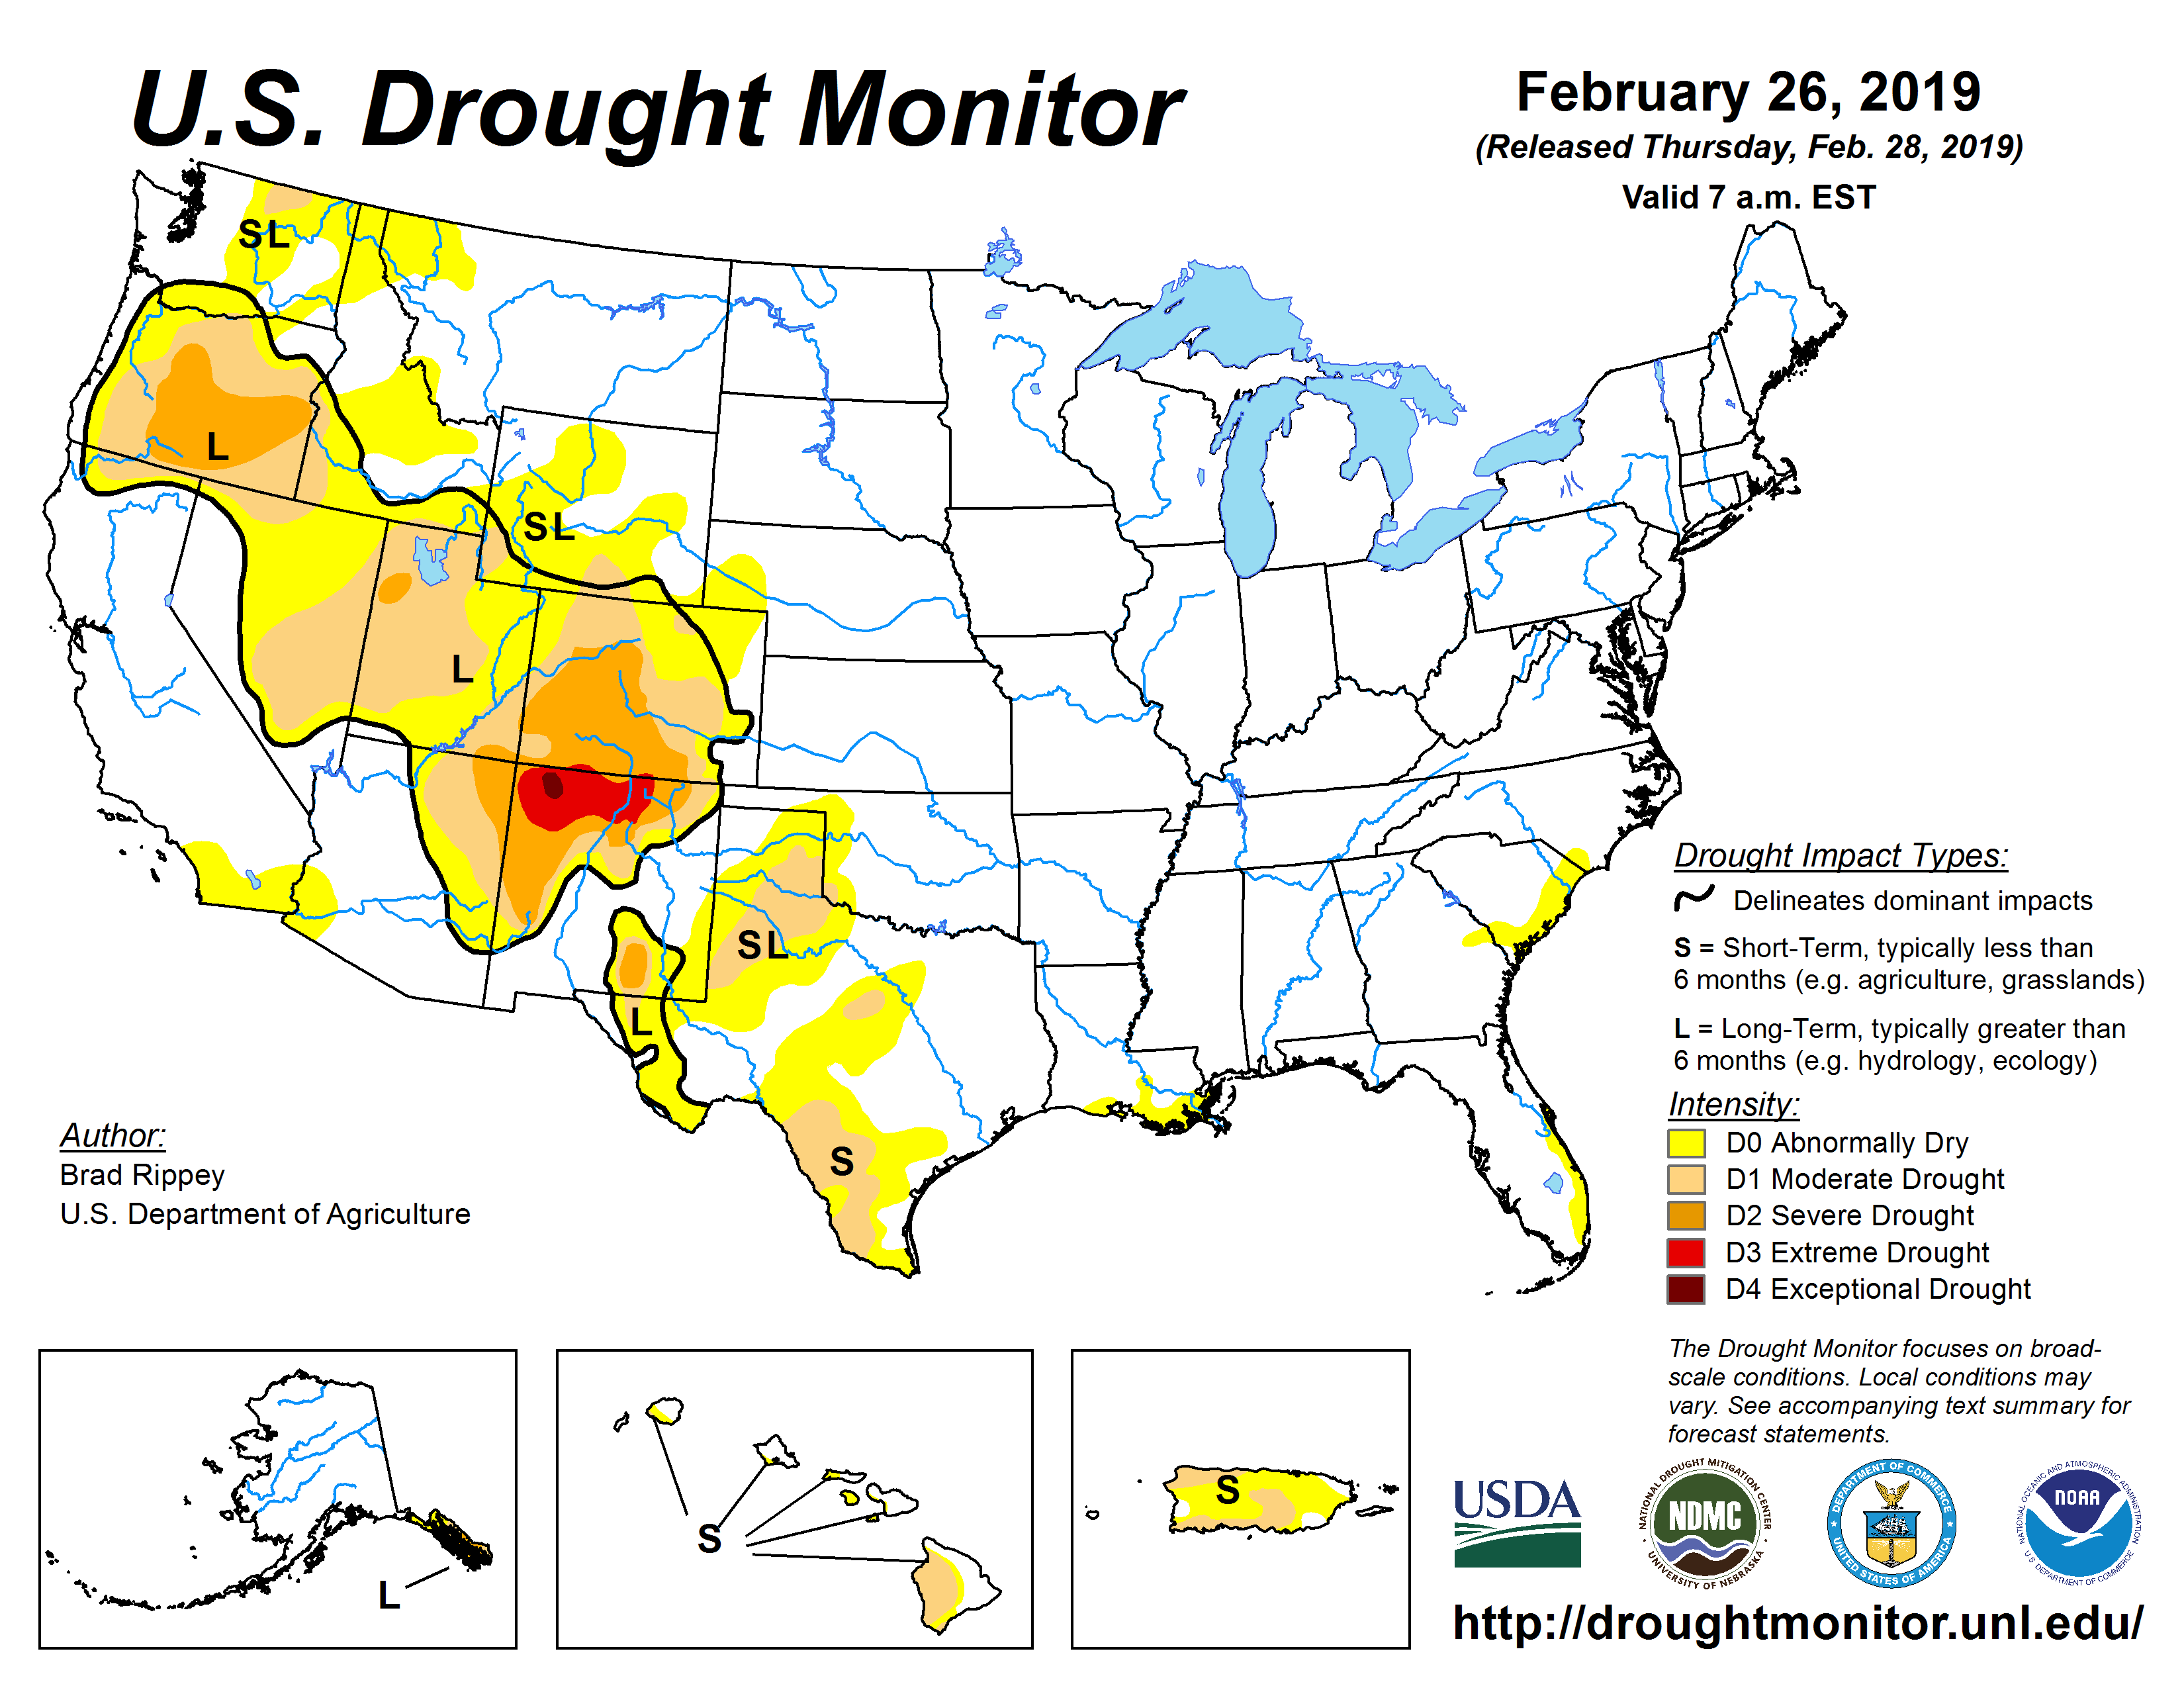 The U.S. Drought Monitor drought map valid February 26, 2019